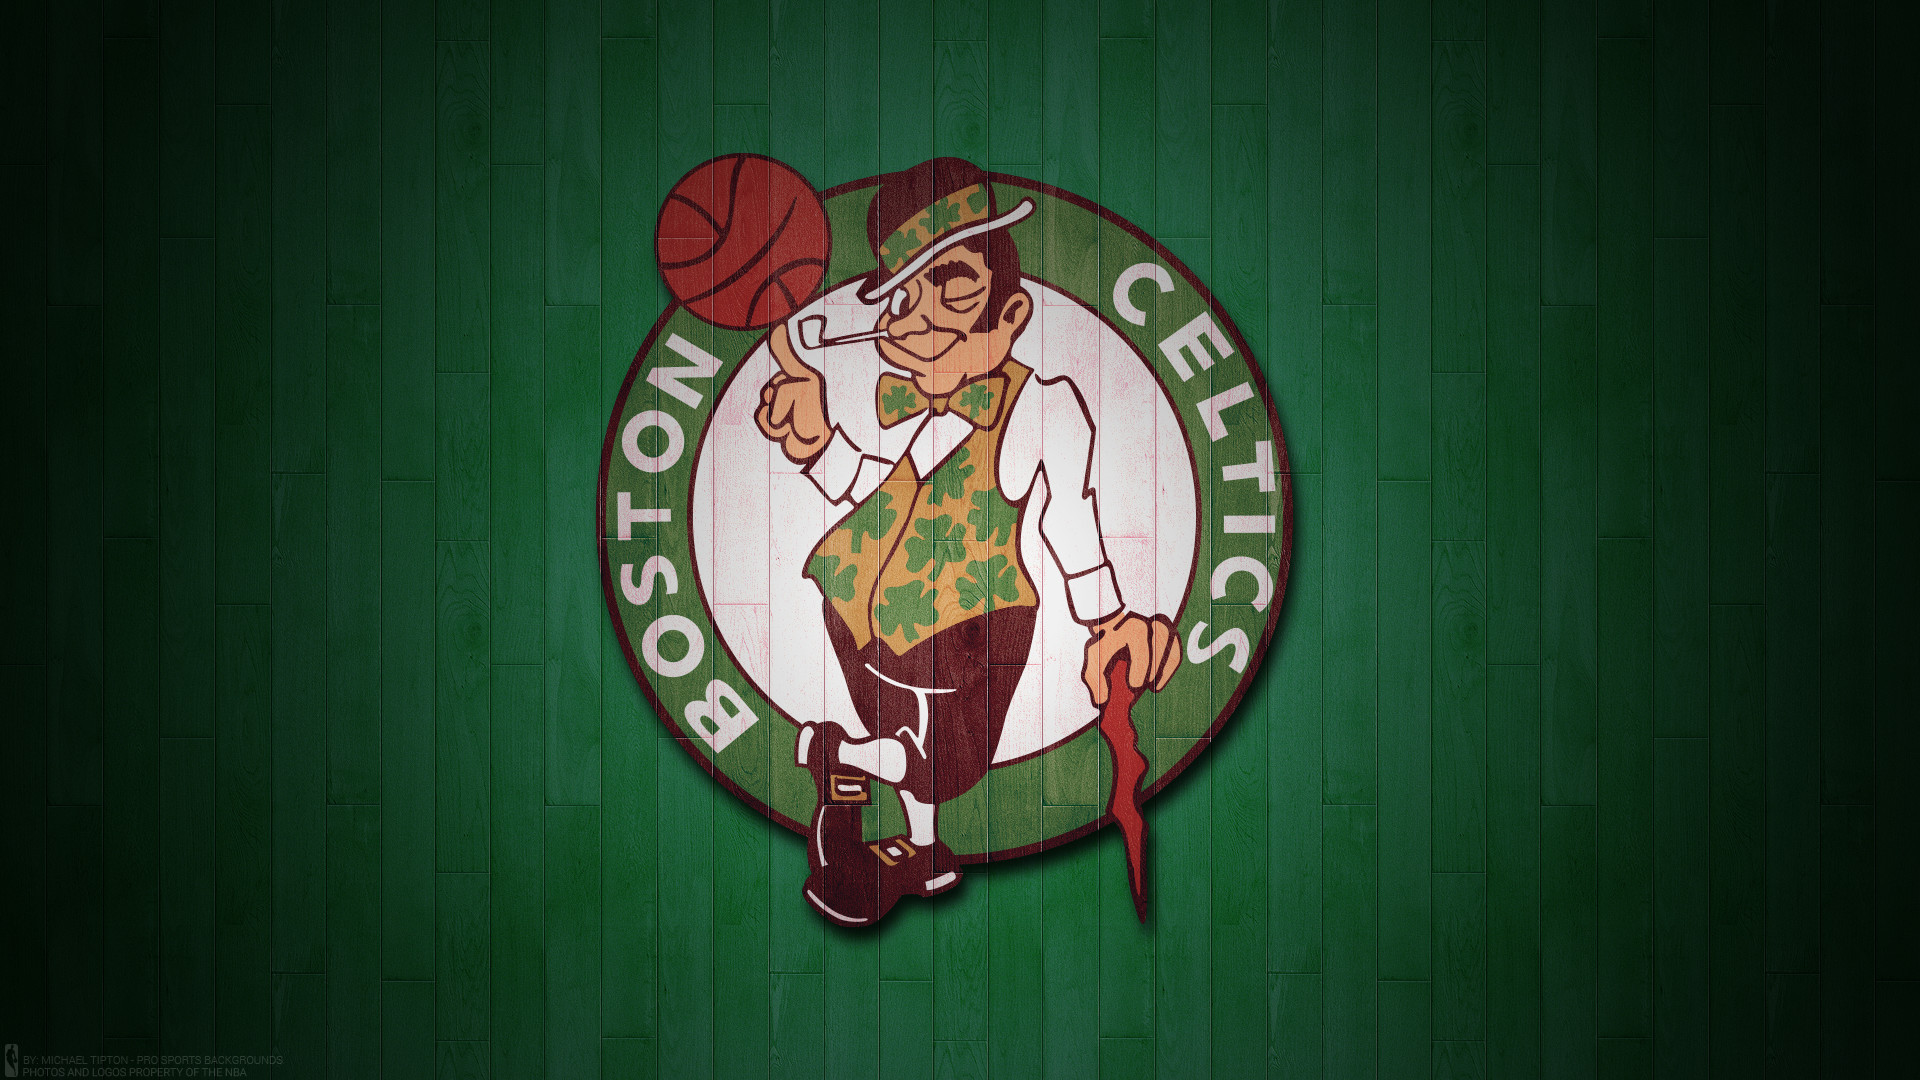 Res: 1920x1080, Boston Celtics 2017 nba basketball team logo hardwood wallpaper free for  mac and desktop pc computer